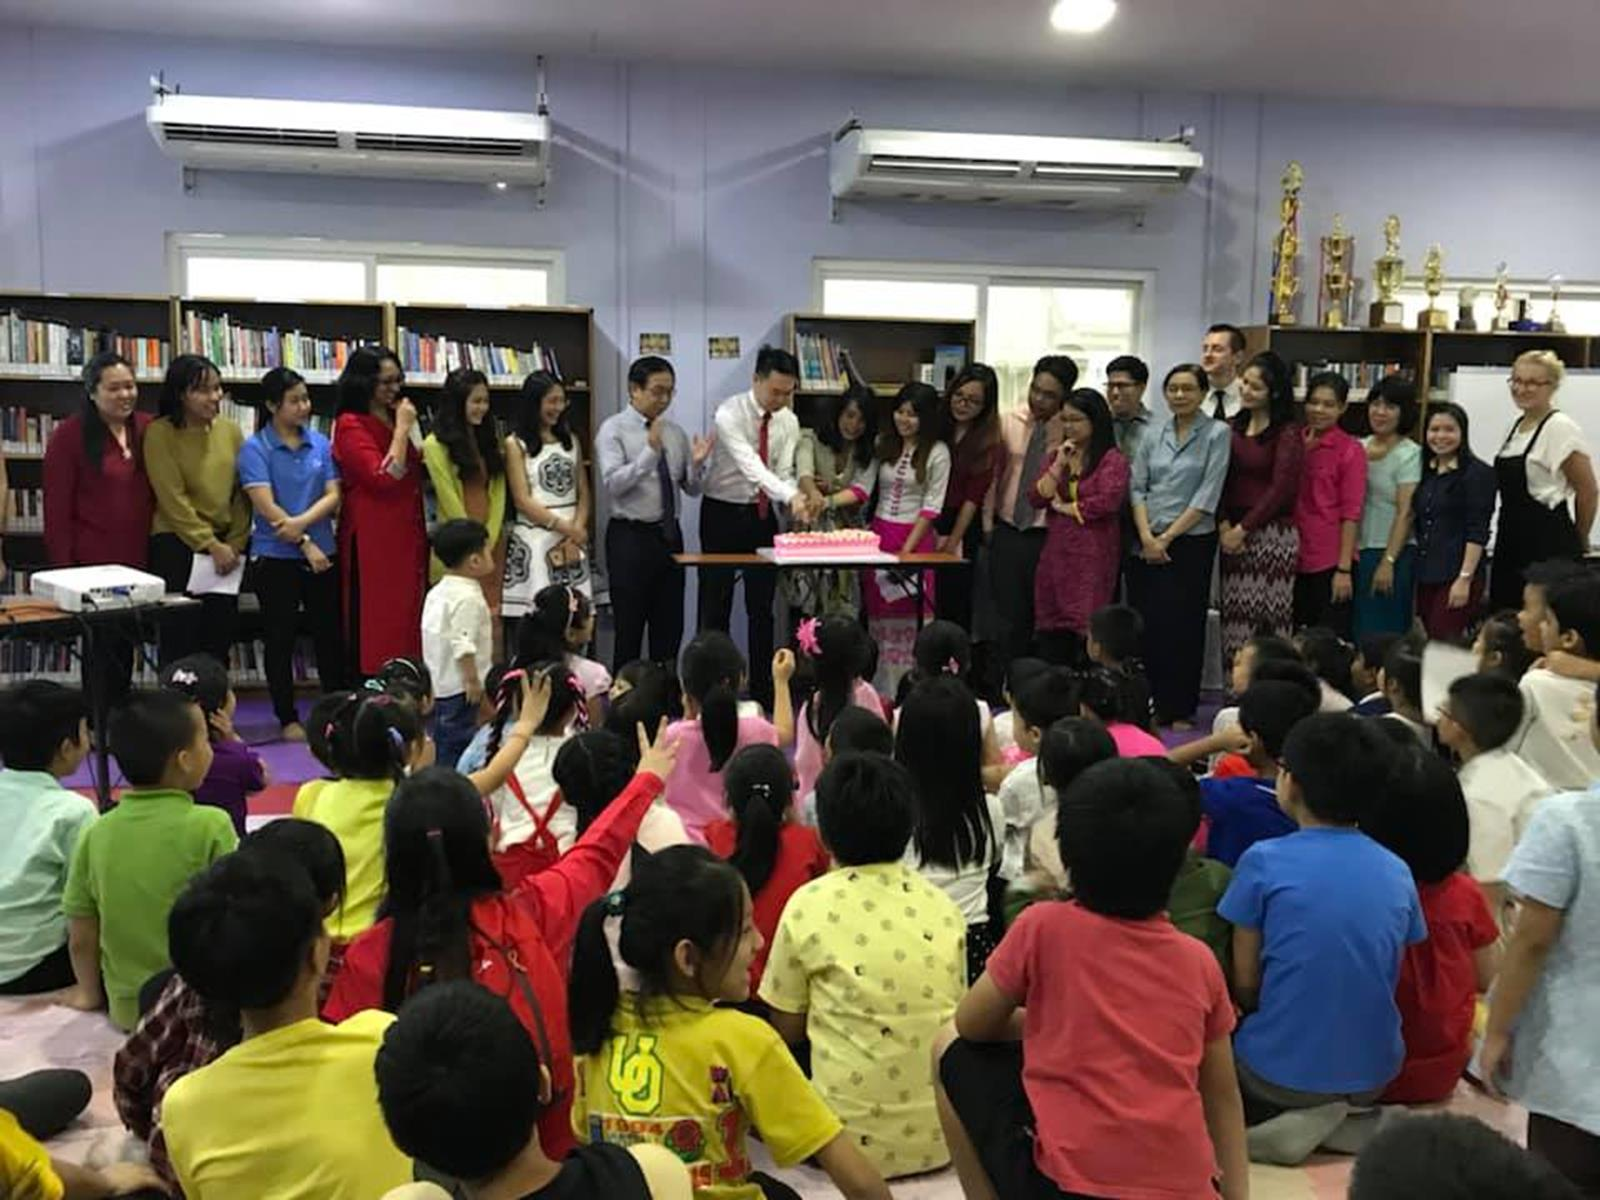 SIS Teachers' Day Celebration 2018 (28 Sep)